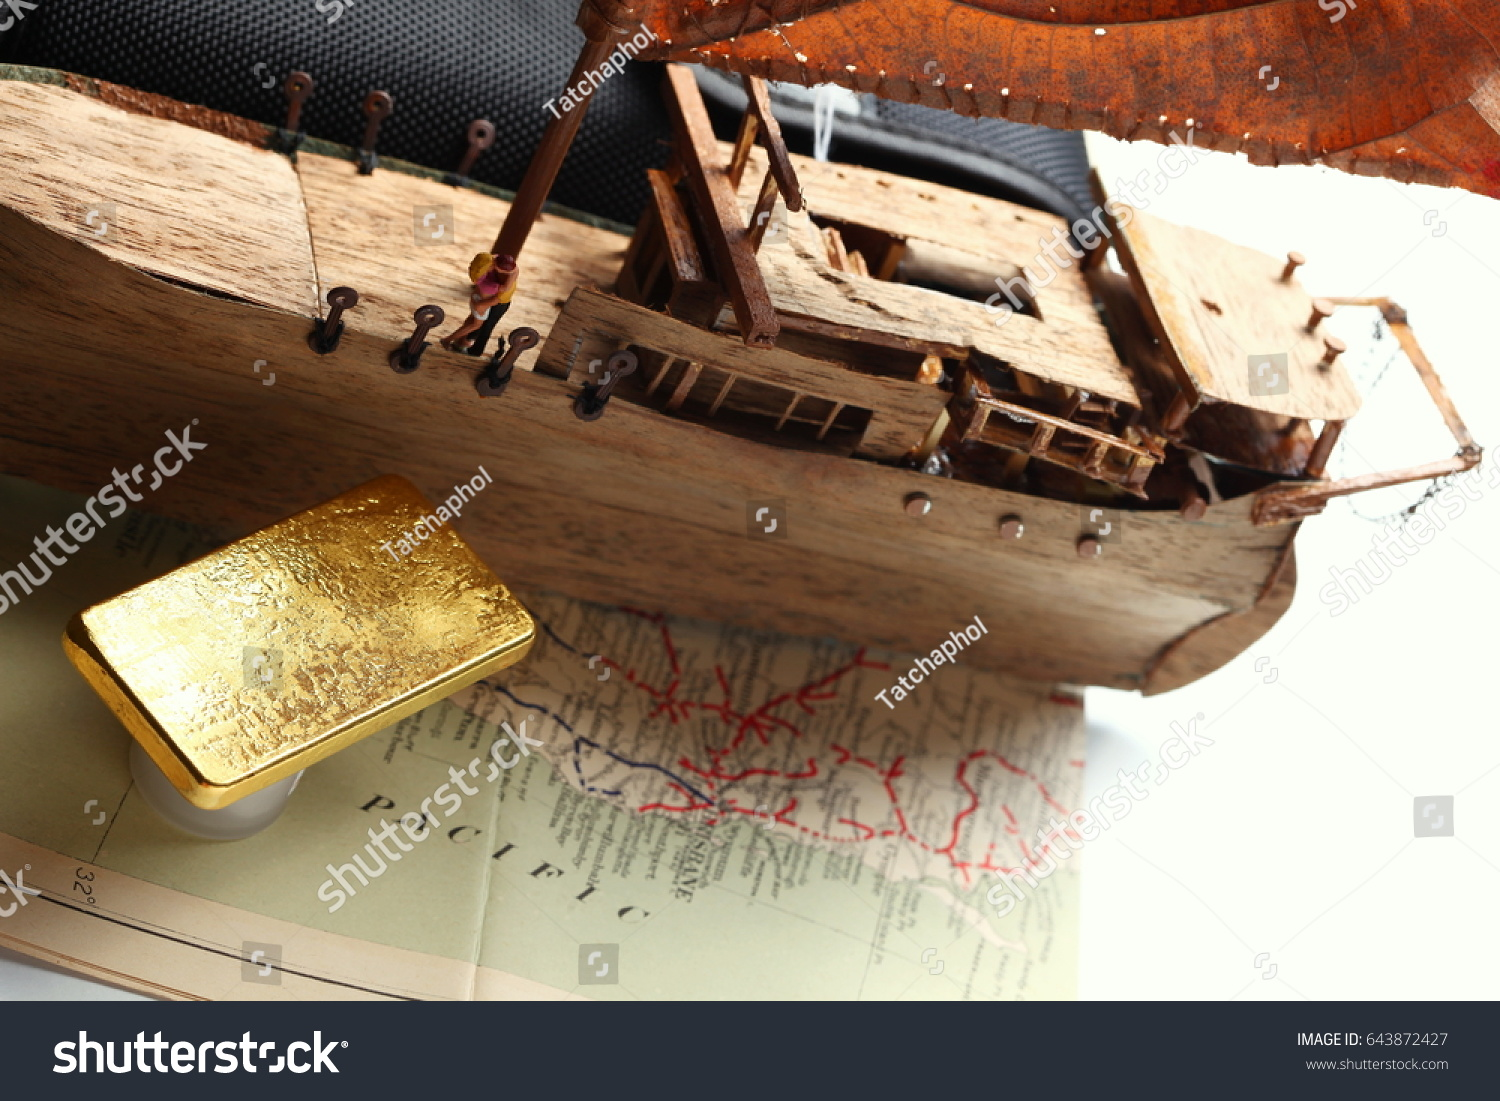 f2e747c17a05 Gold bar put beside miniature scratch build junk ship wooden model on the  old paper map